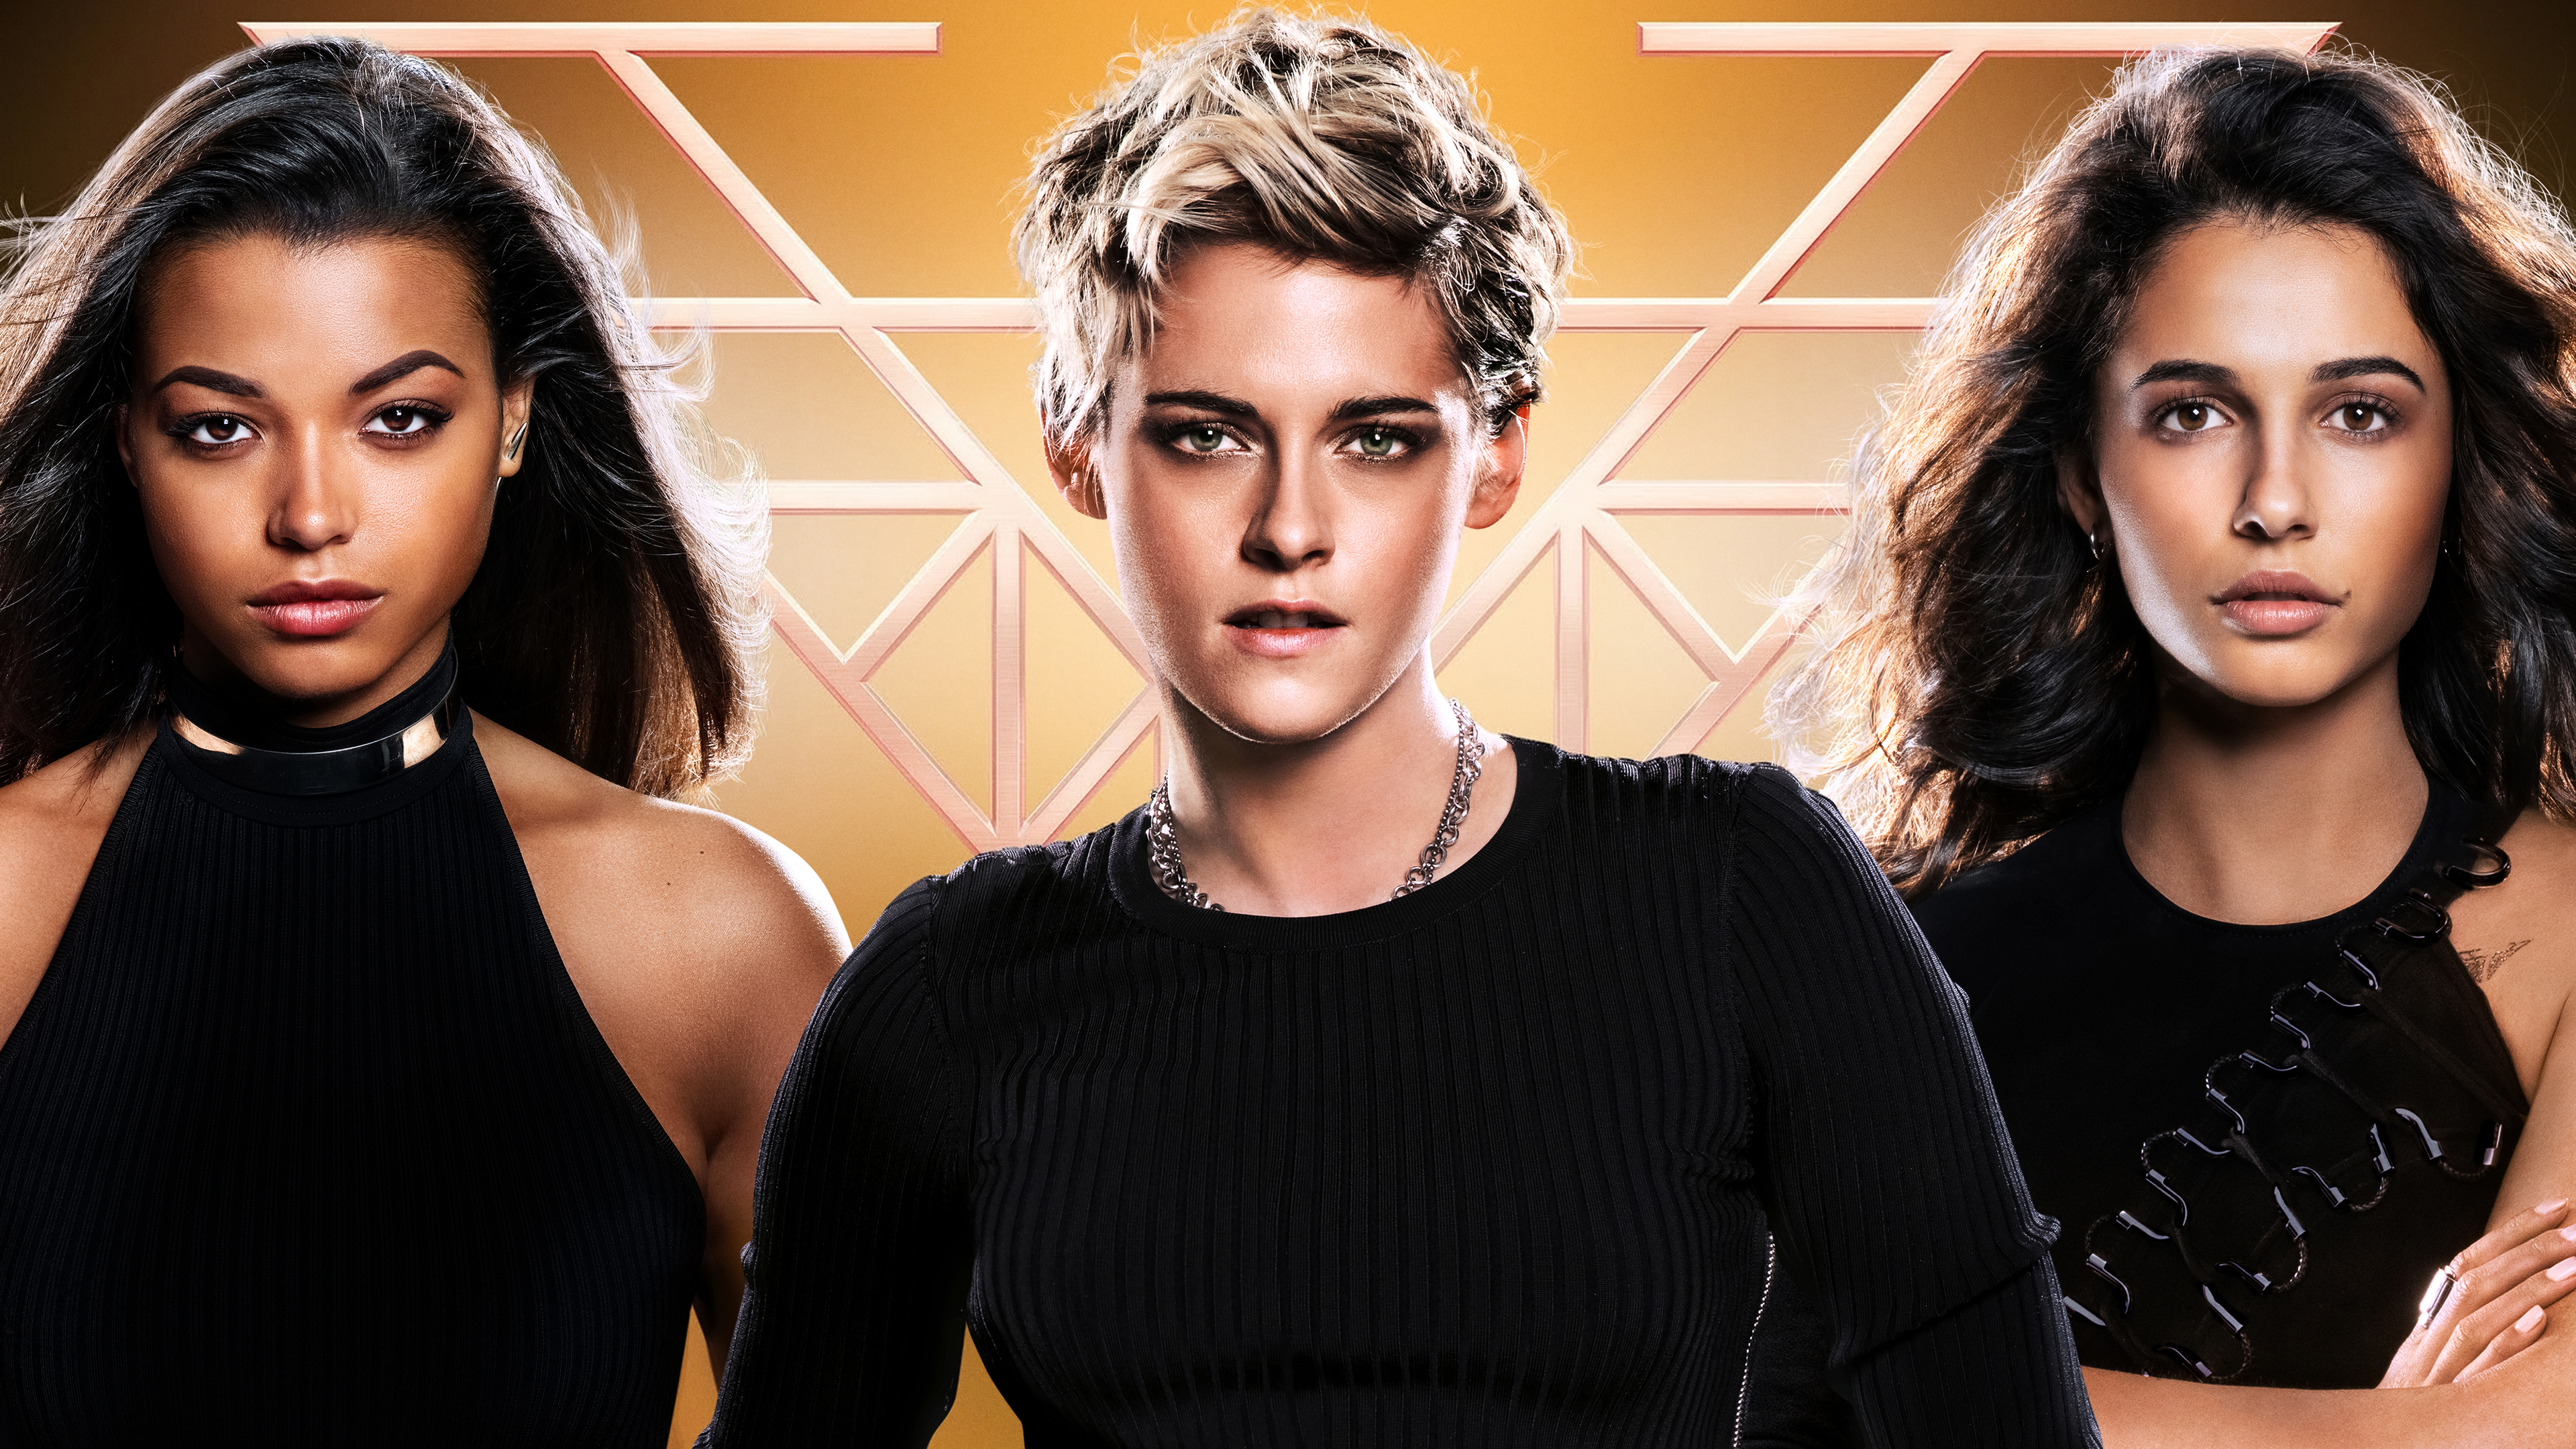 charlies angels 2019 1572370953 - Charlies Angels 2019 - naomi scott wallpapers, movies wallpapers, kristen stewart wallpapers, hd-wallpapers, ella balinska wallpapers, charlies angels wallpapers, 8k wallpapers, 5k wallpapers, 4k-wallpapers, 2019 movies wallpapers